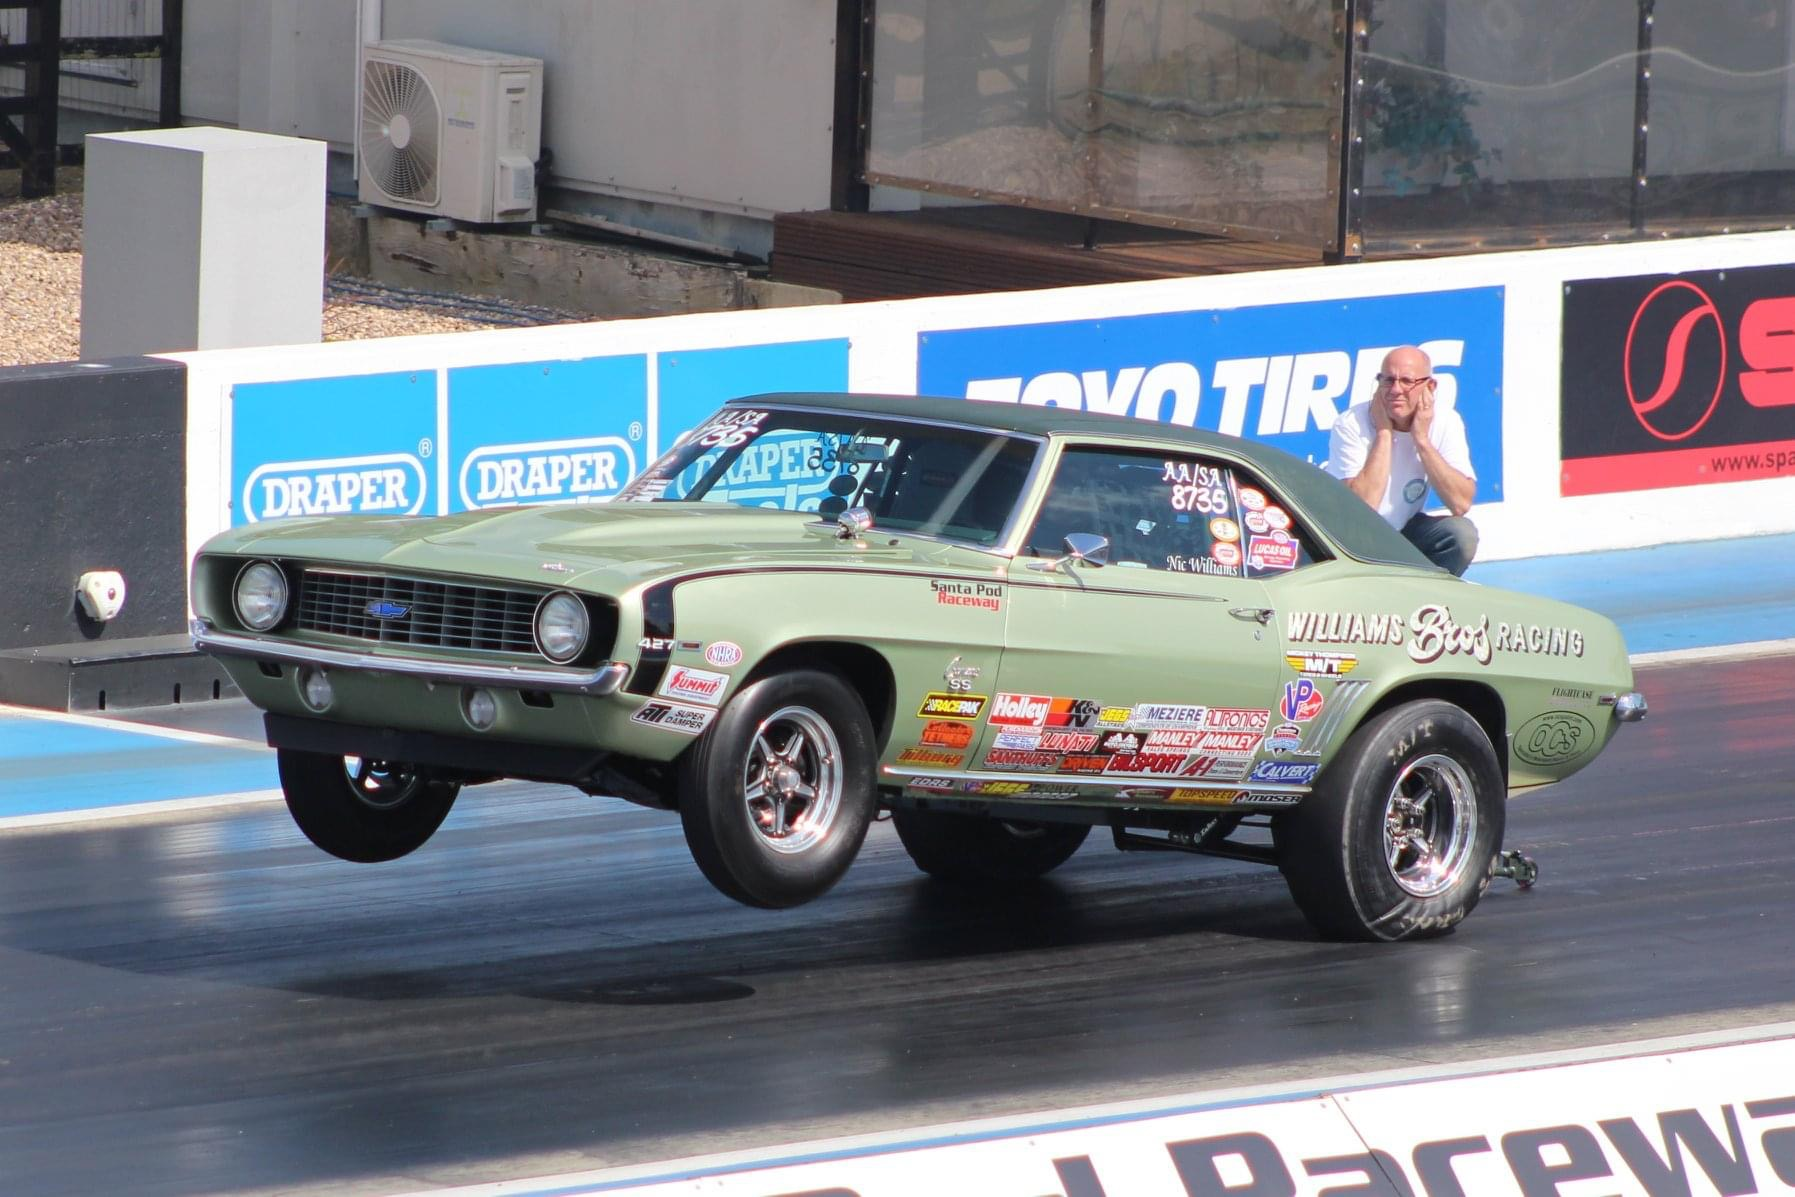 Hot Rod, American Car, Muscle Car, American Muscle, Ford, Dodge, Chevrolet, Racing Suspension, Chassis, Drag Car